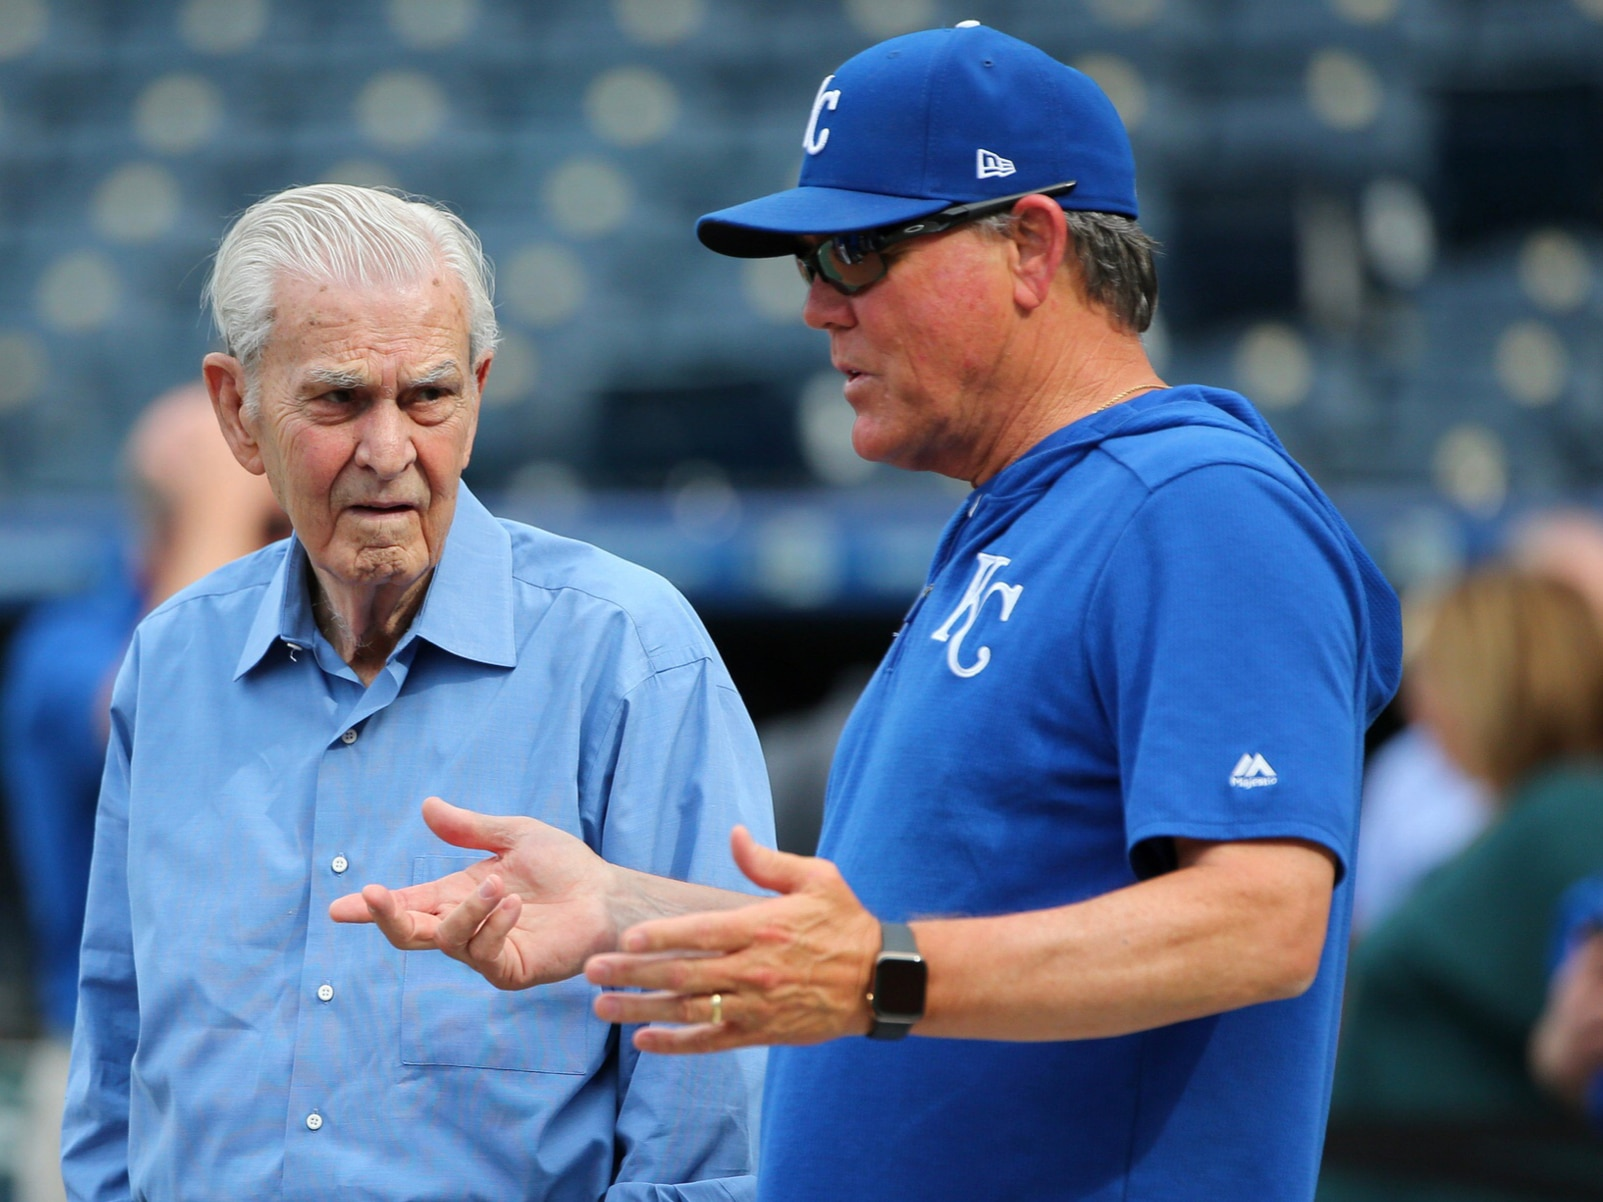 Royals owner negotiating sale of the team for more than $1B